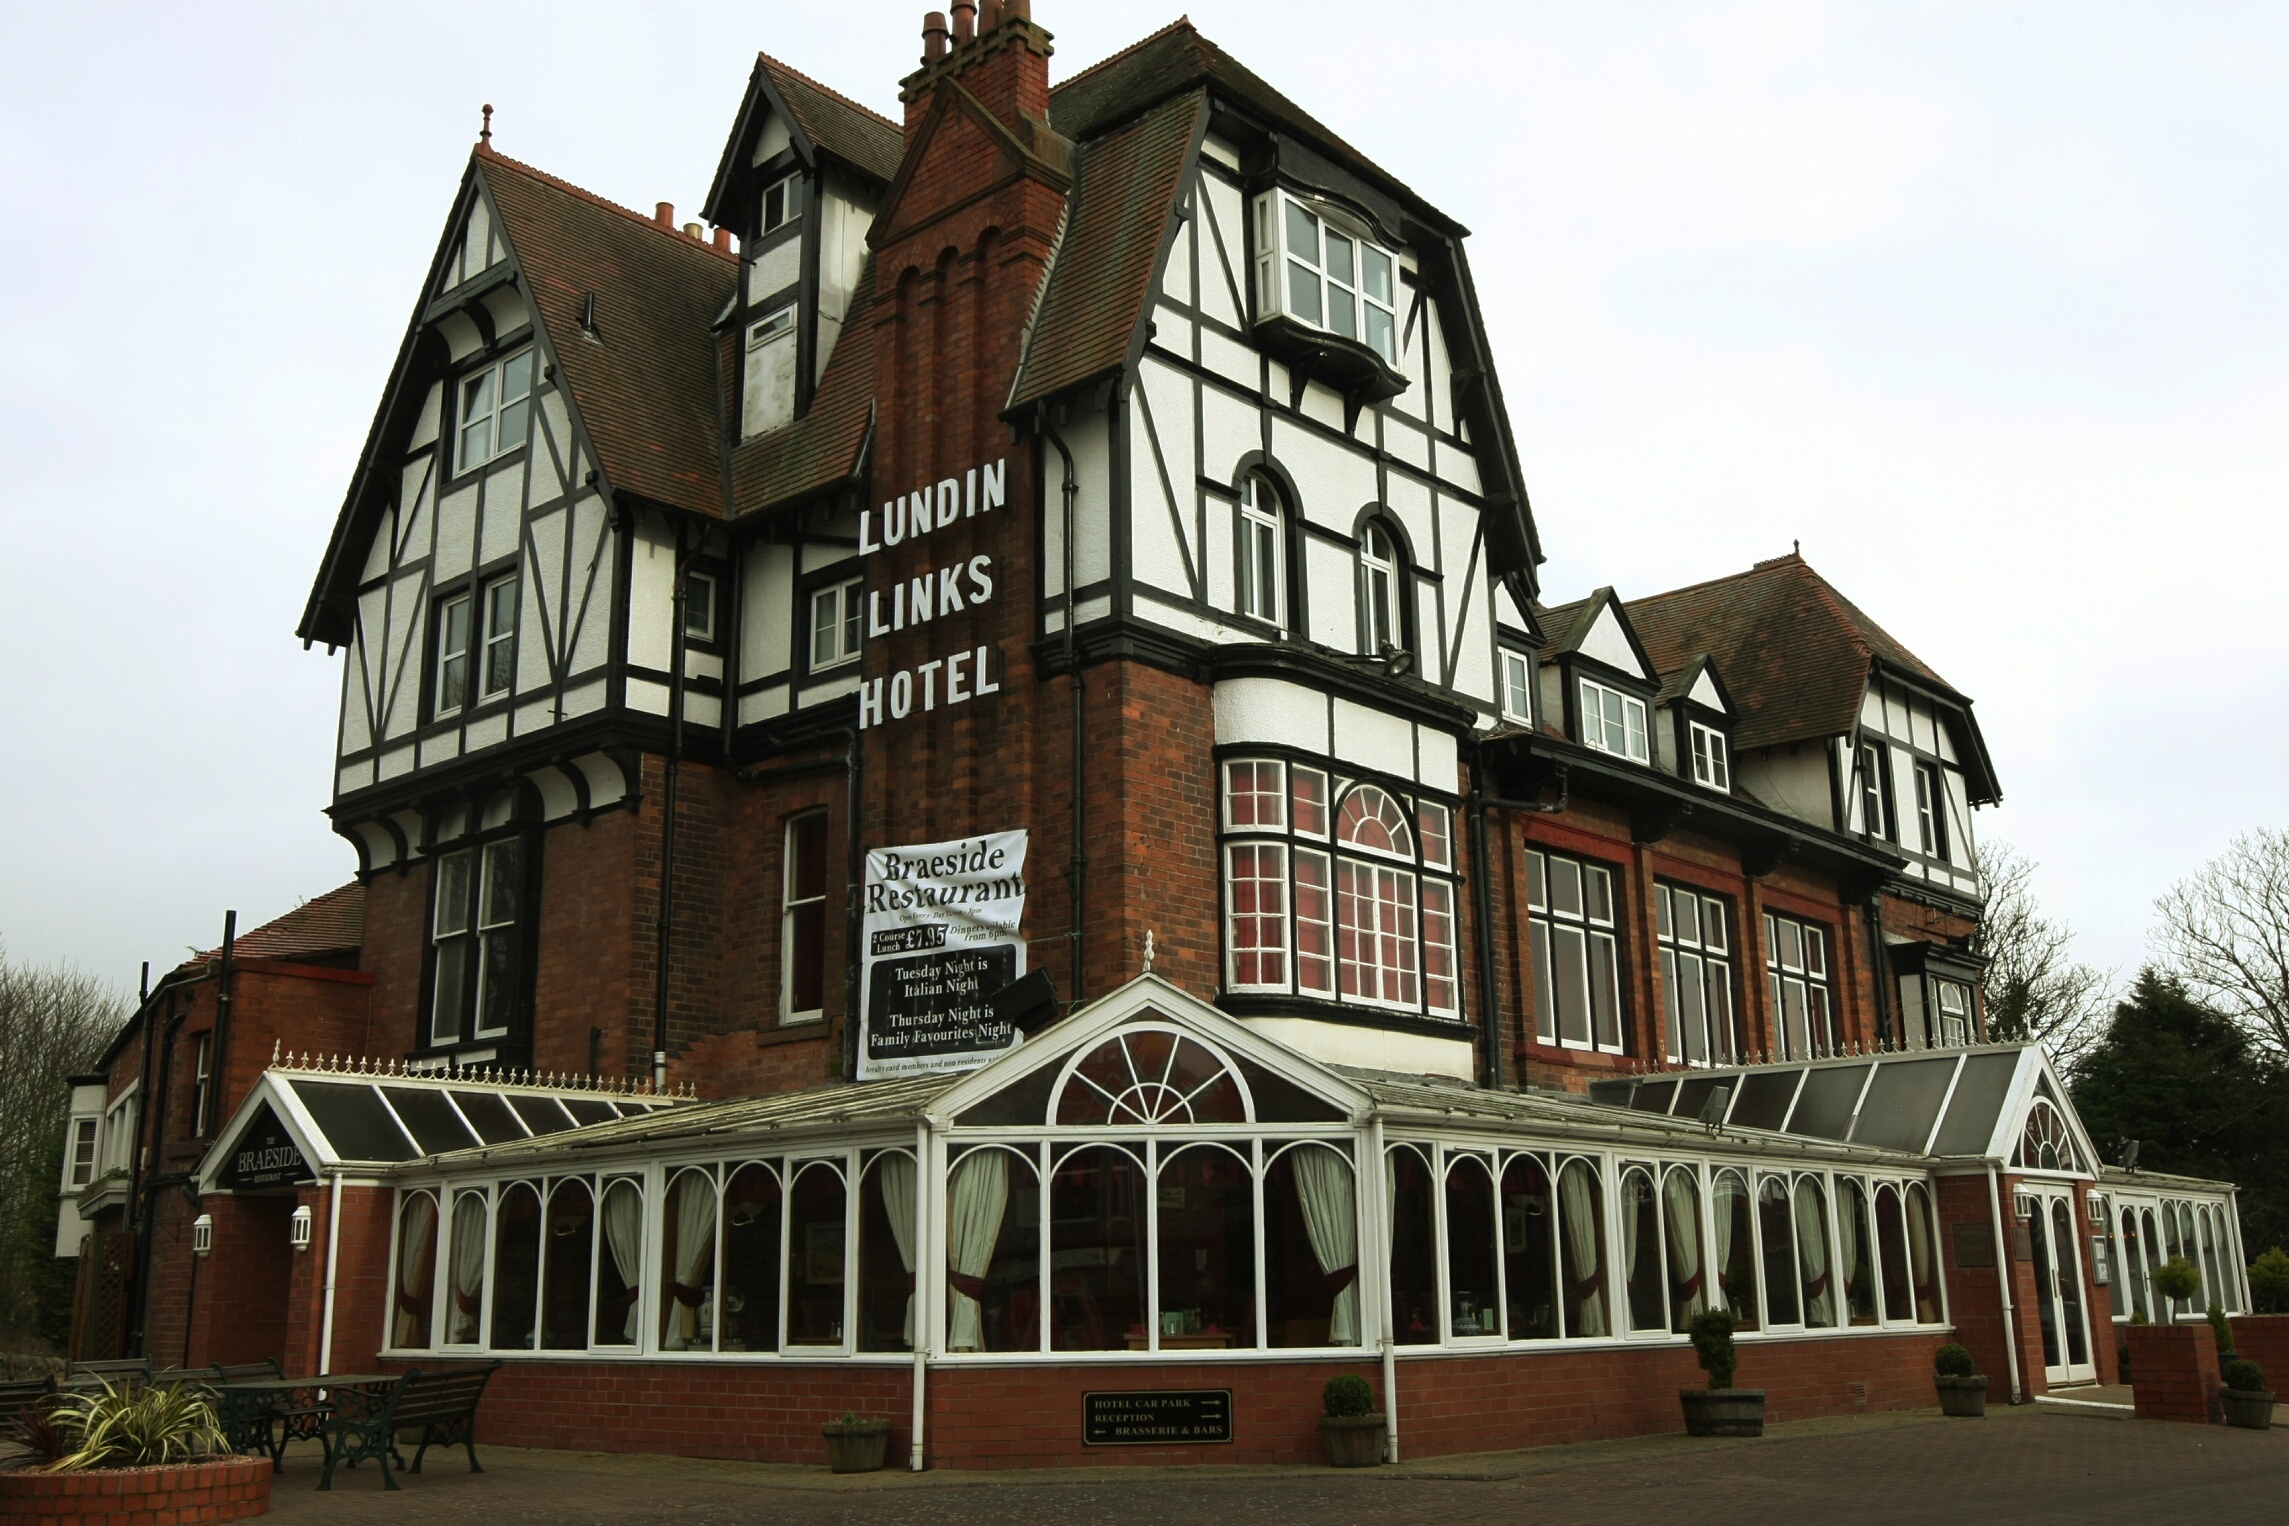 The Lundin Links Hotel.